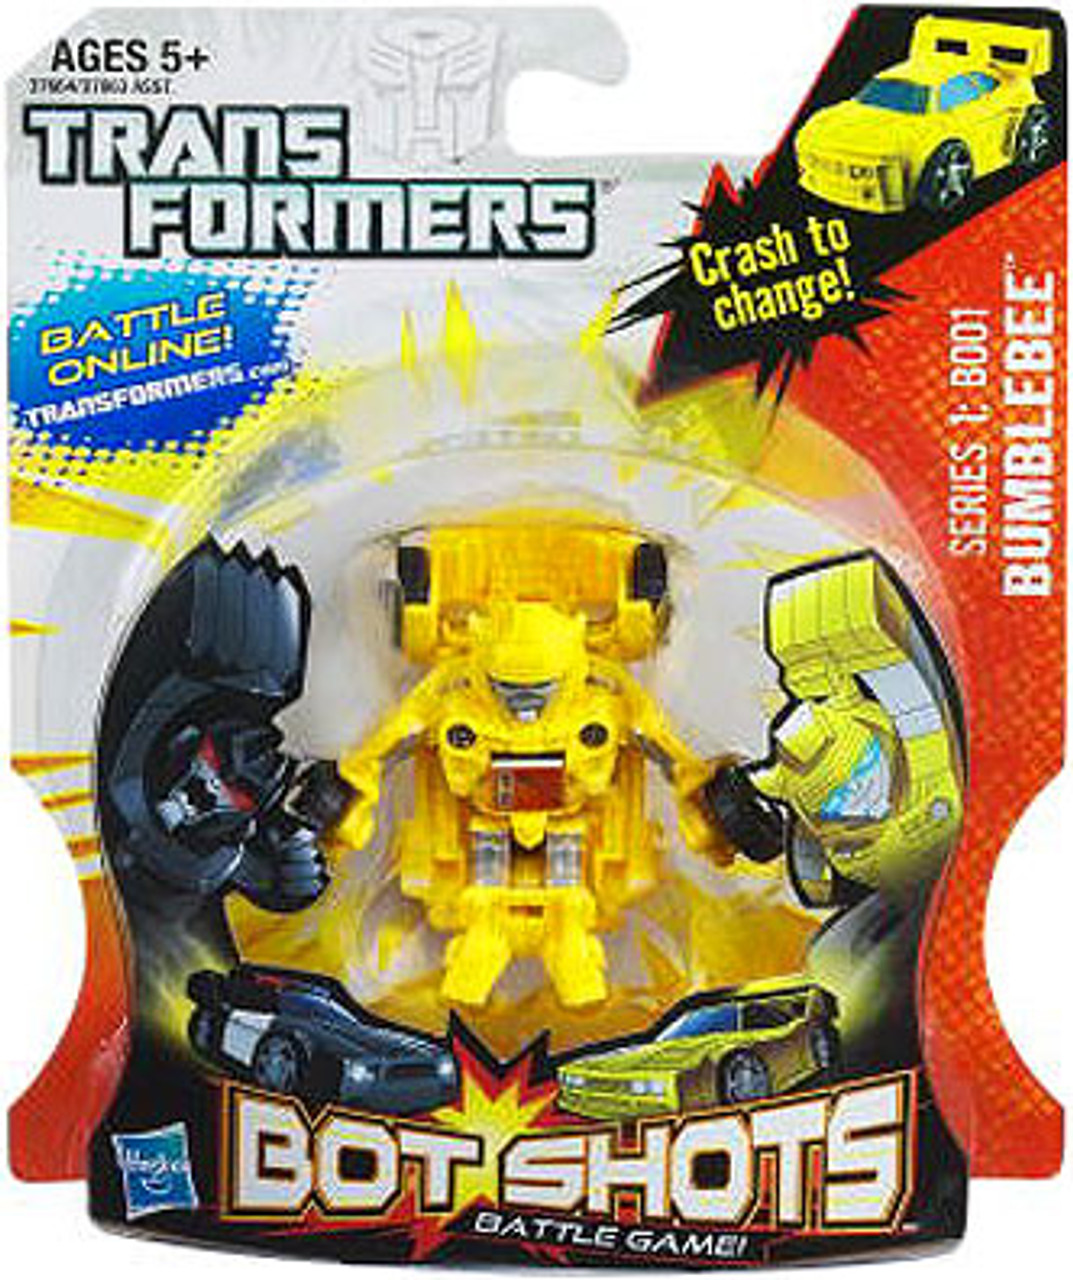 Transformers Bot Shots Battle Game Series 1 Bumblebee Action Figure B001